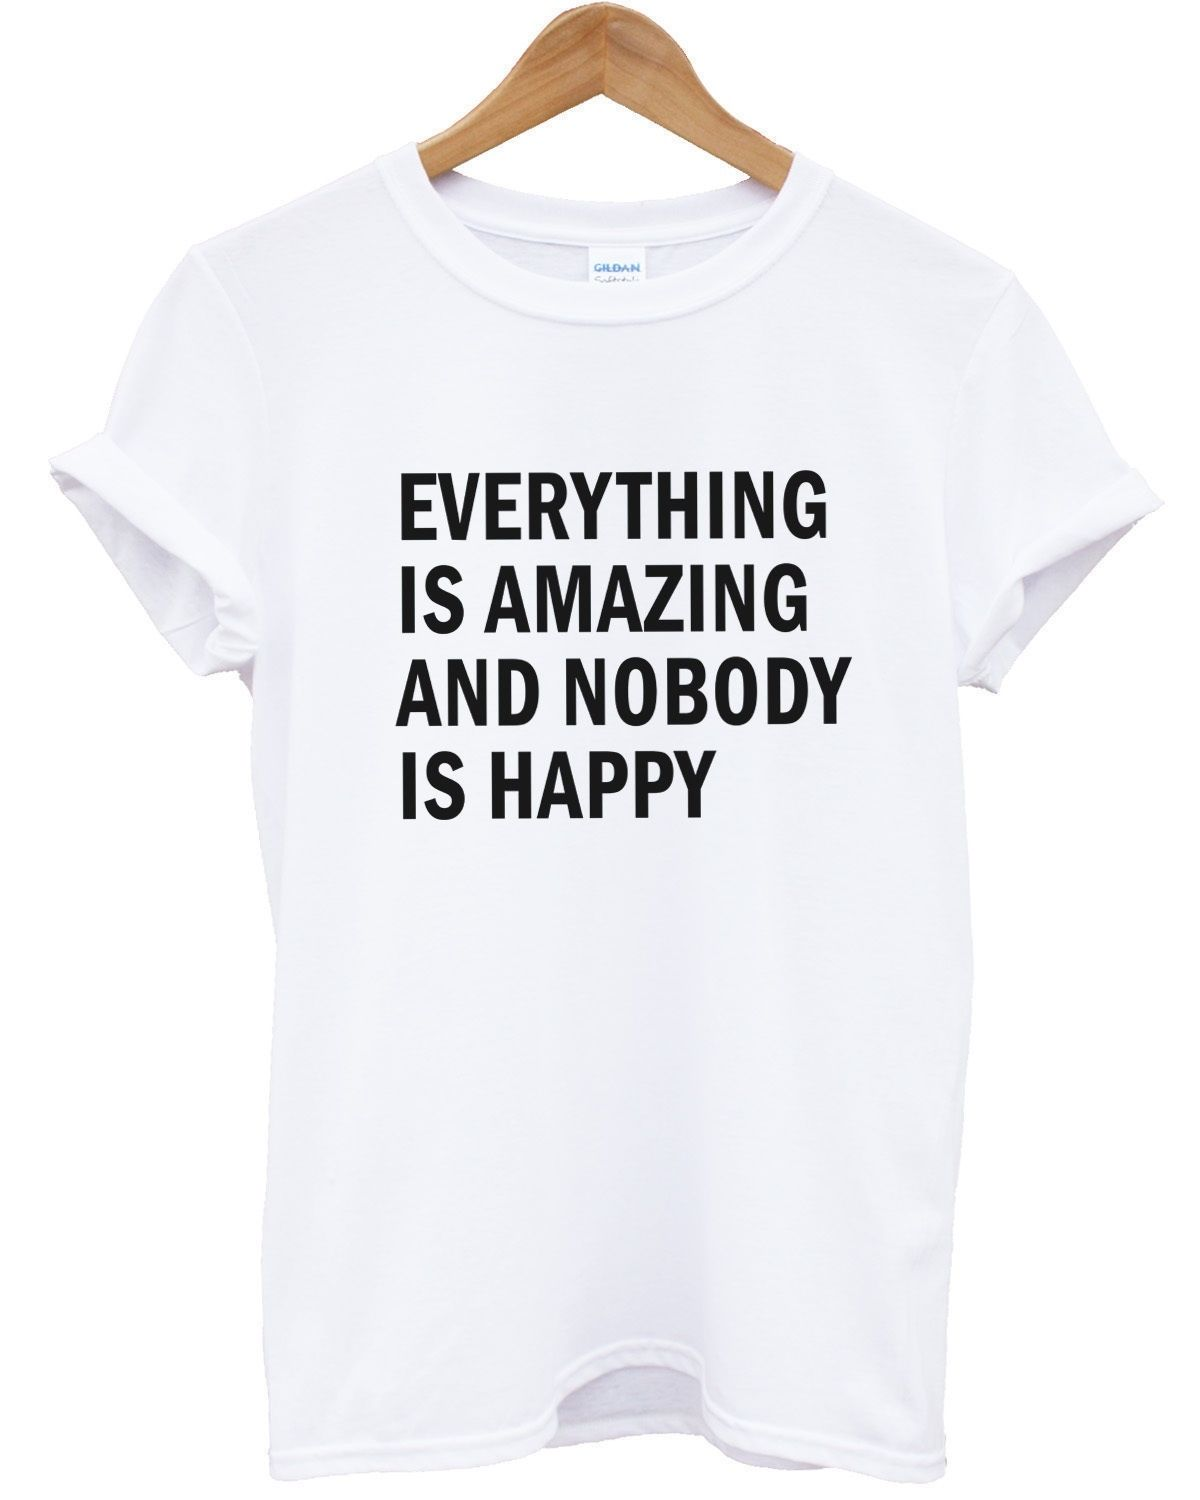 EVERYTHING IS AMAZING AND NOBODY IS HAPPY T SHIRT TOP HIPSTER MEN WOMEN BLOG Cheap wholesale tees Fashion Style Men Tee image